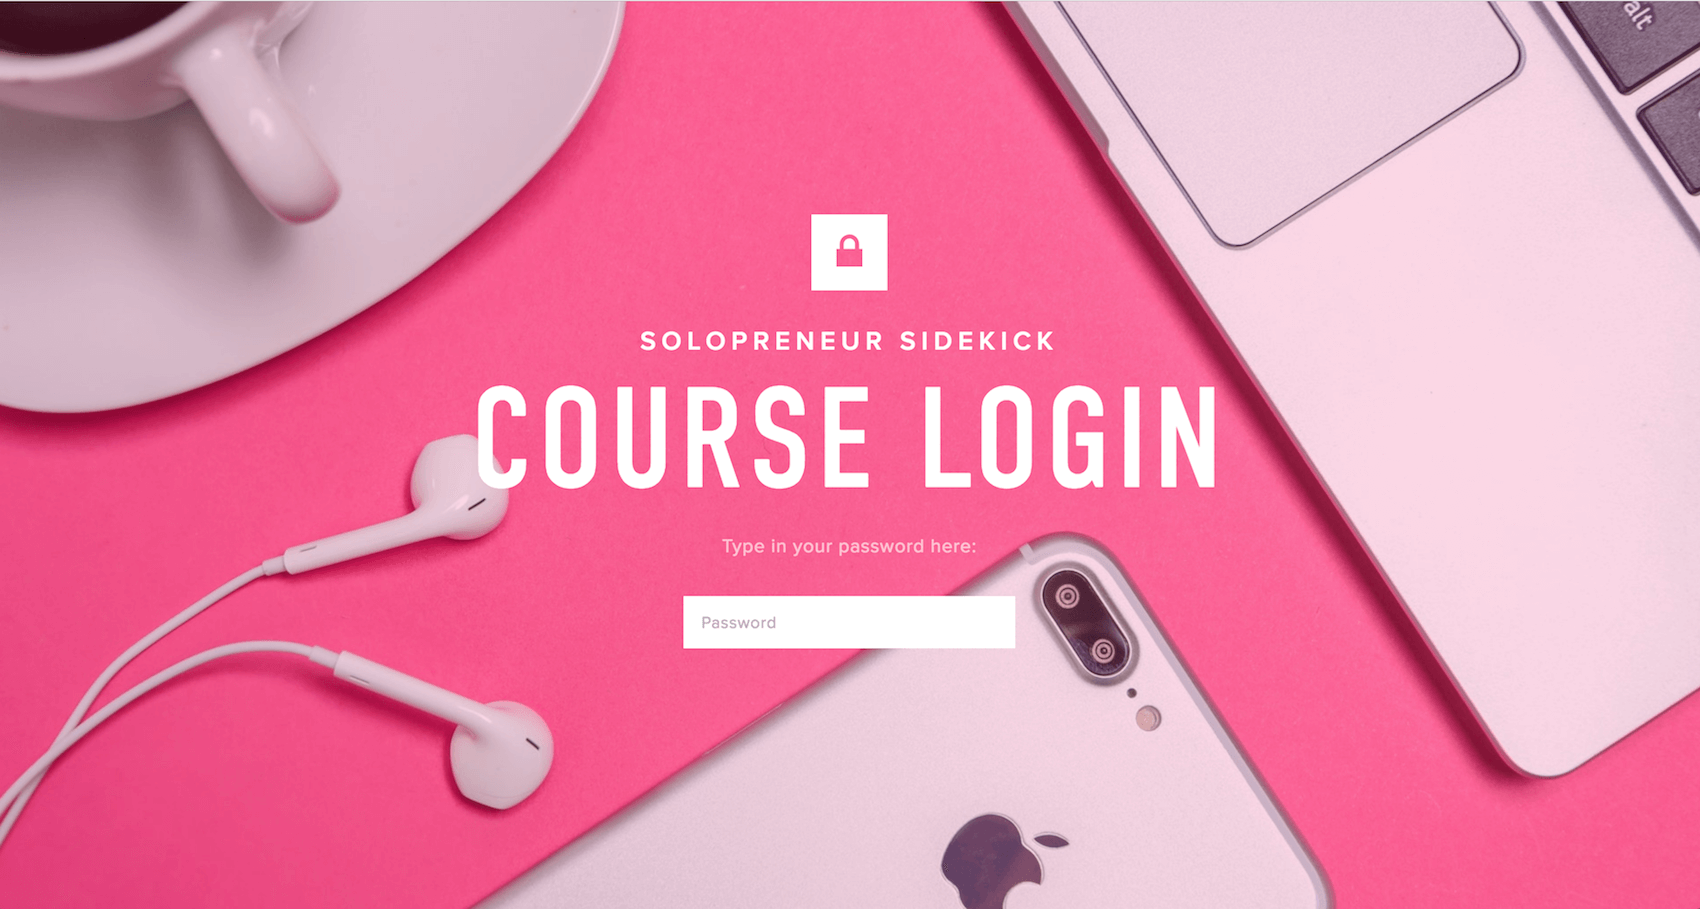 Squarespace-online-course-login-page (1).png